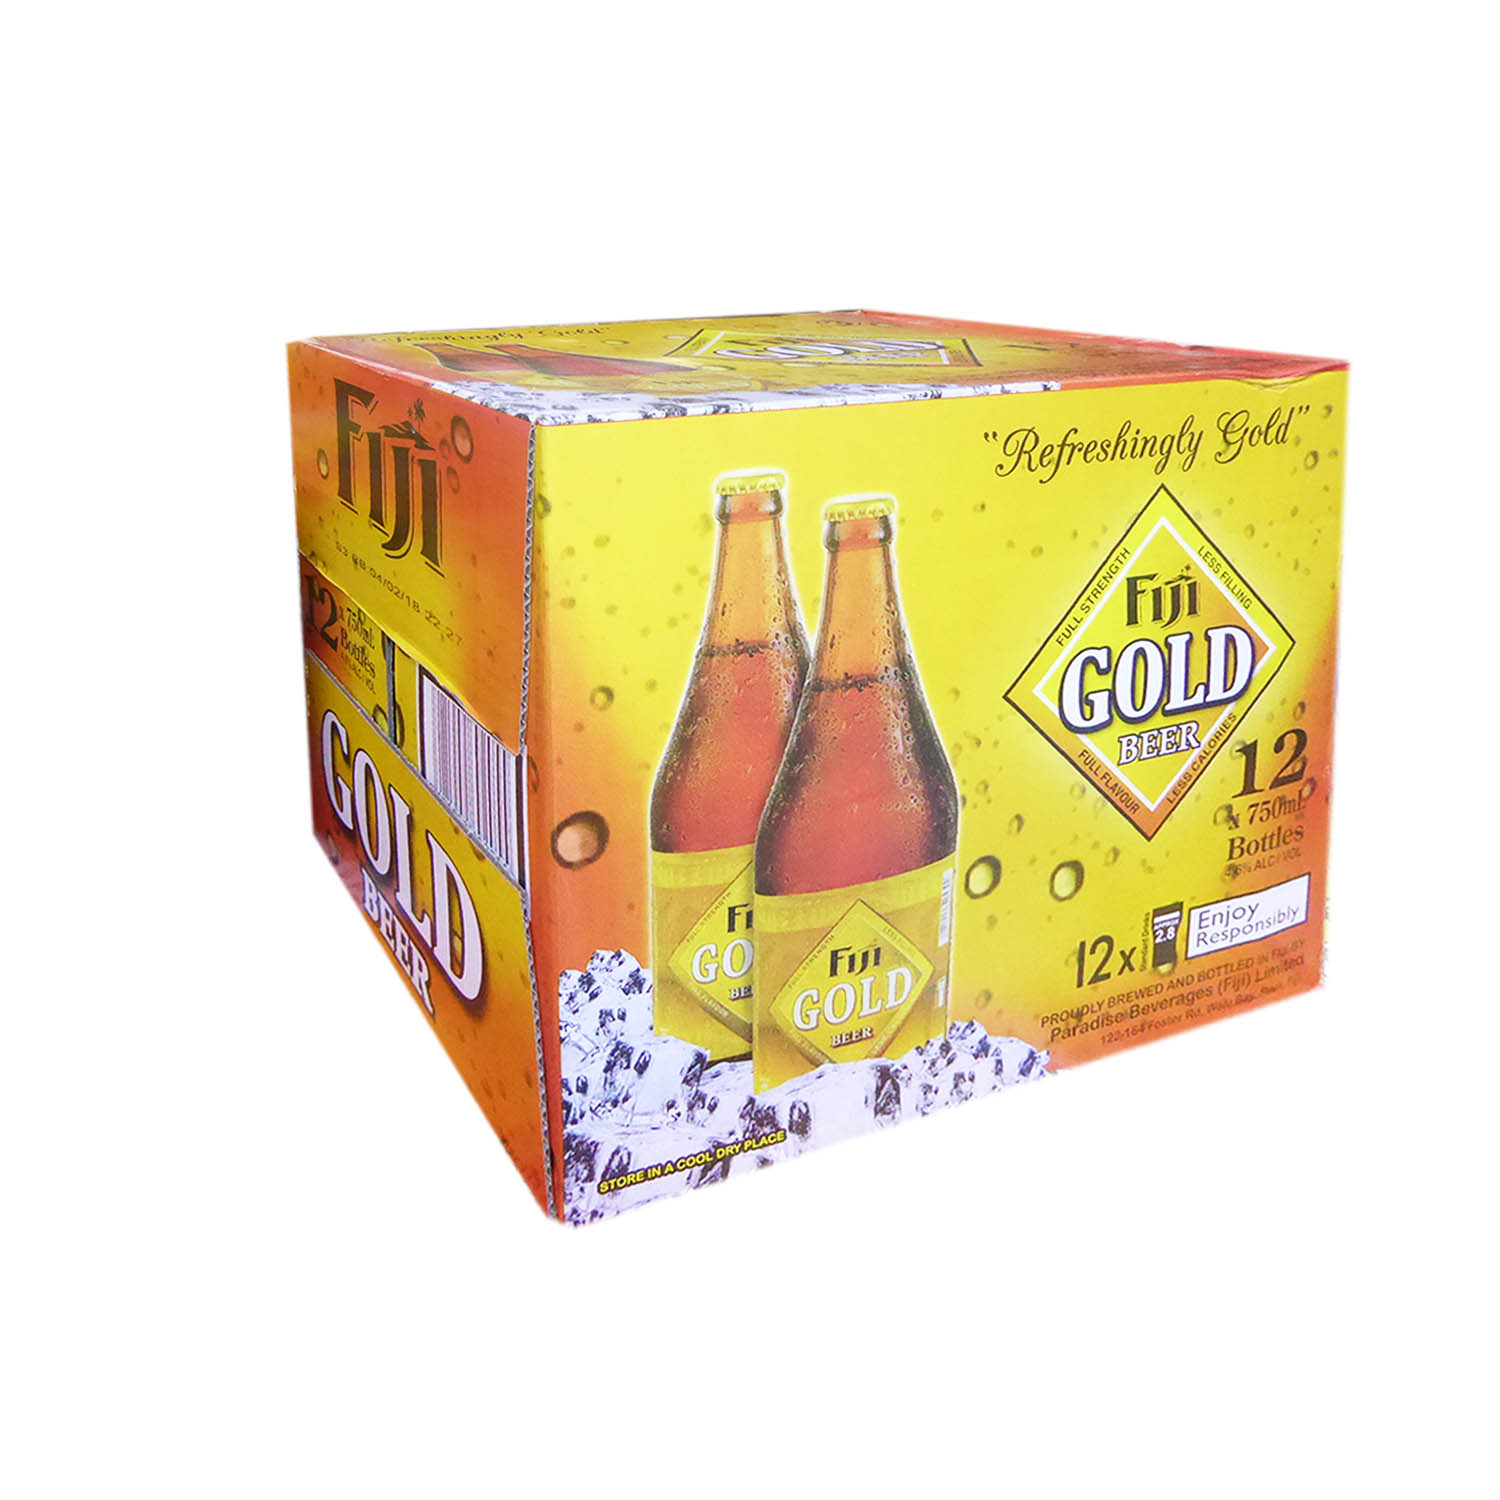 Fiji Gold Beer Ctn